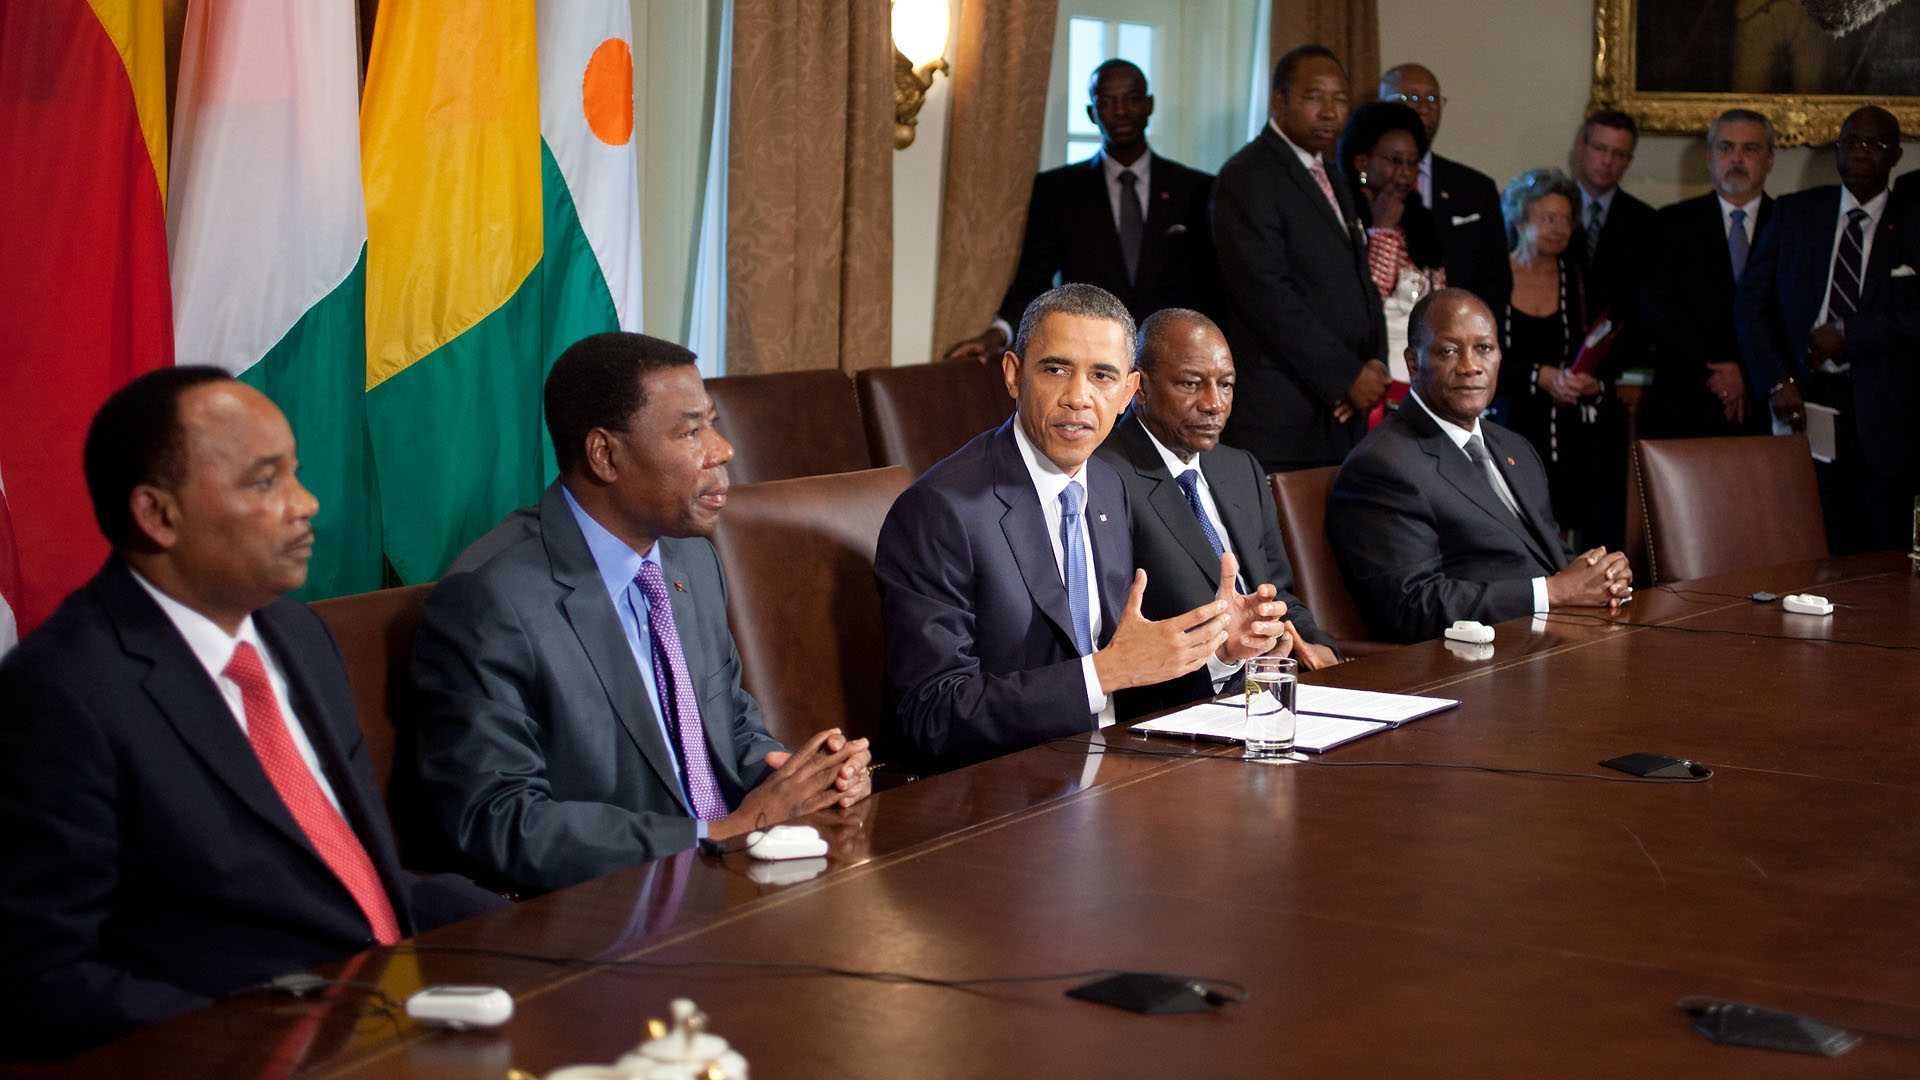 The President Meets with Democratically Elect African Heads of State